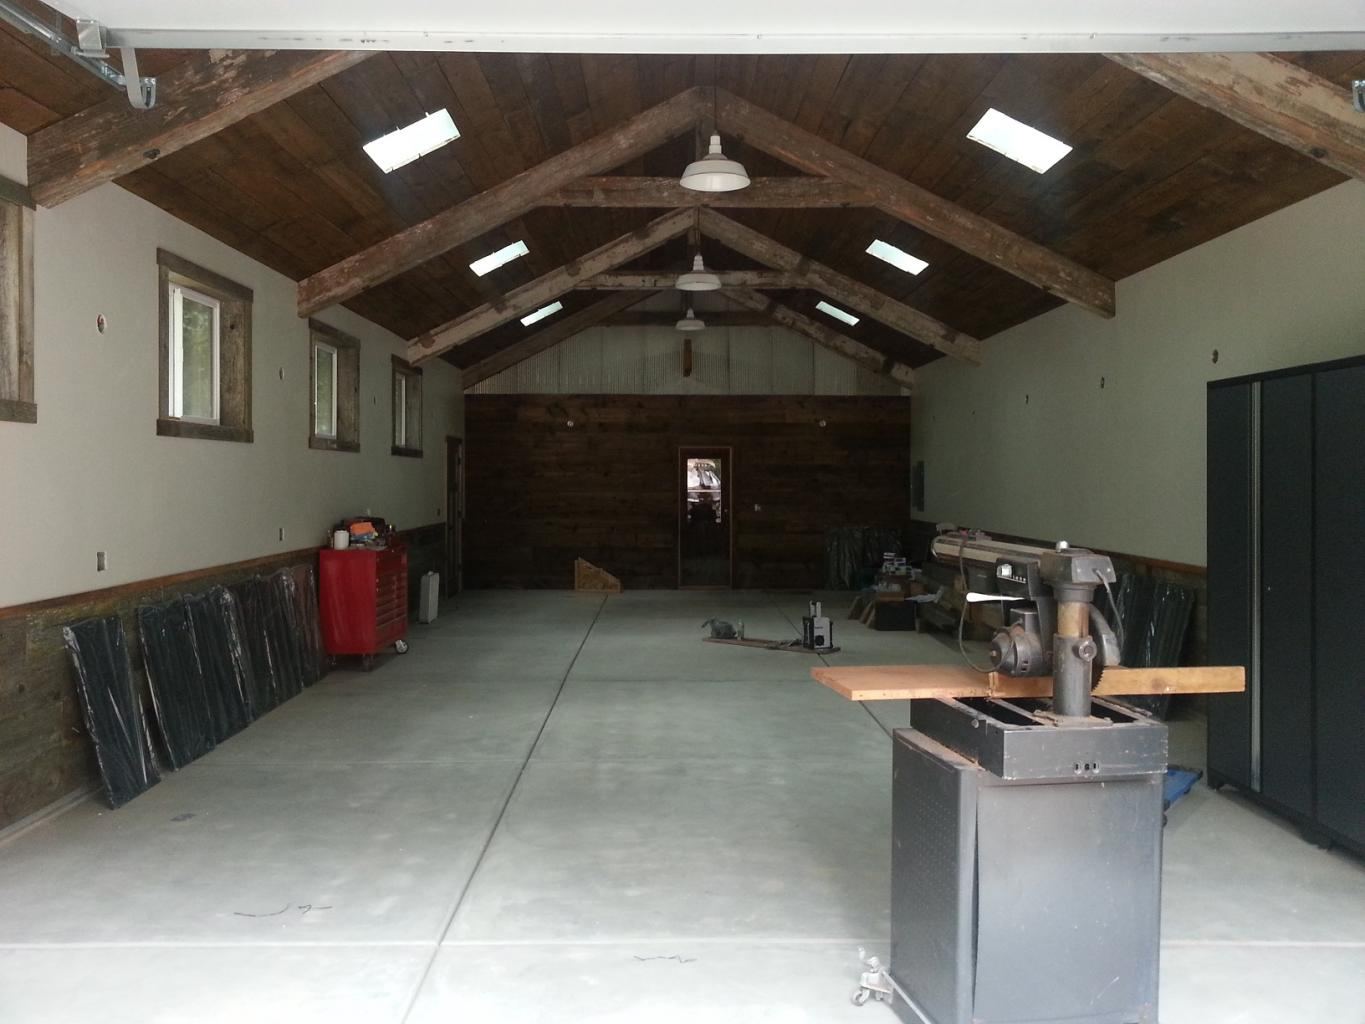 Looking for nice pictures of garages-2b-jpg